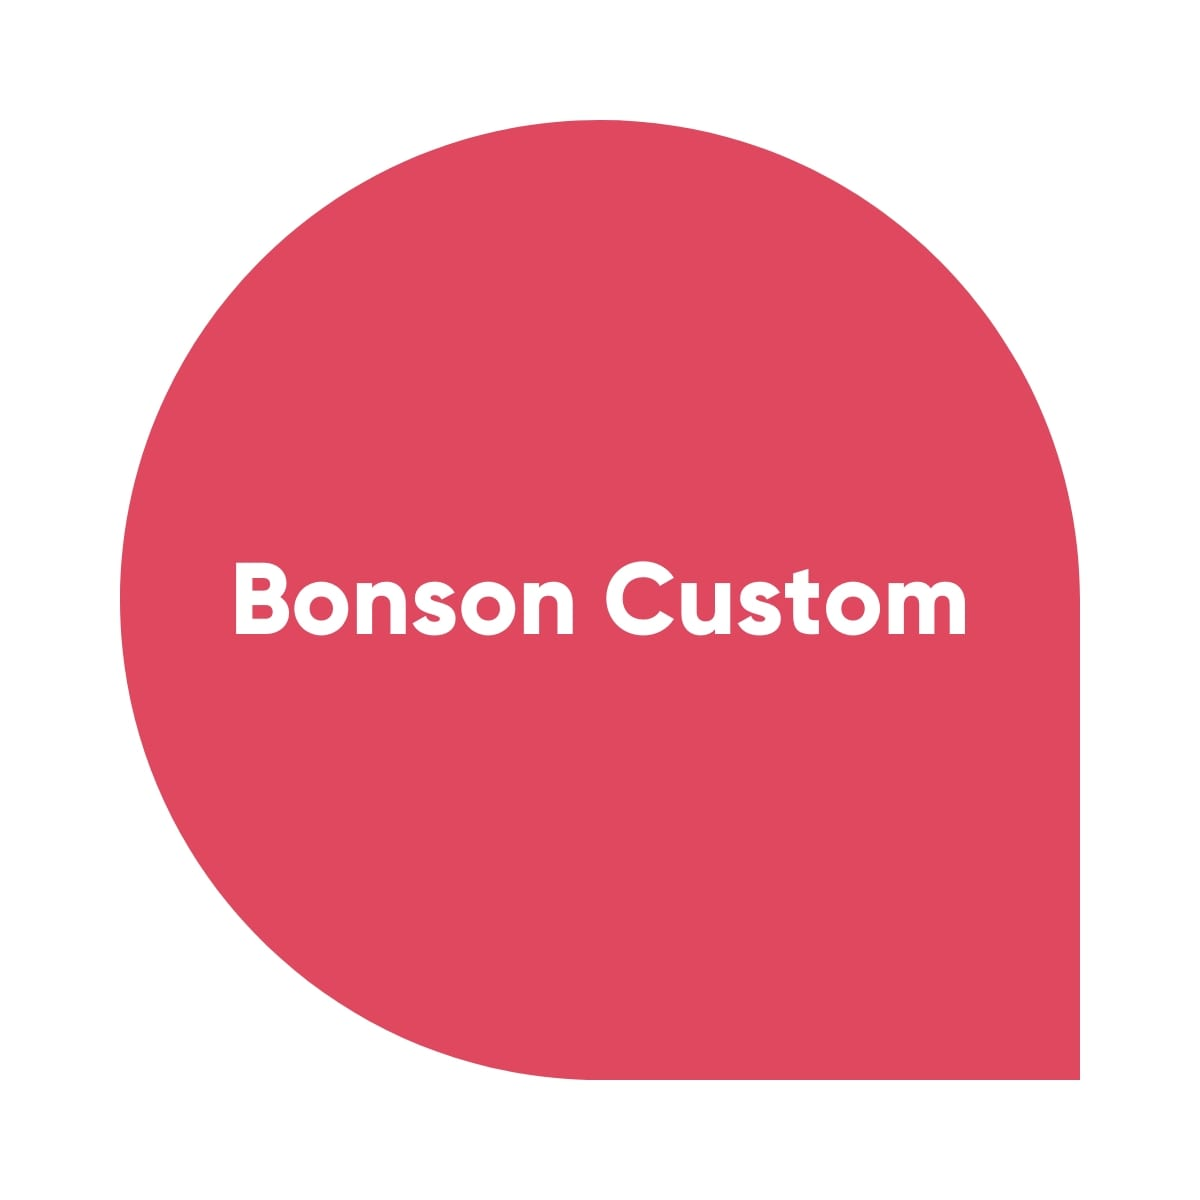 Bonson_custom-teardot